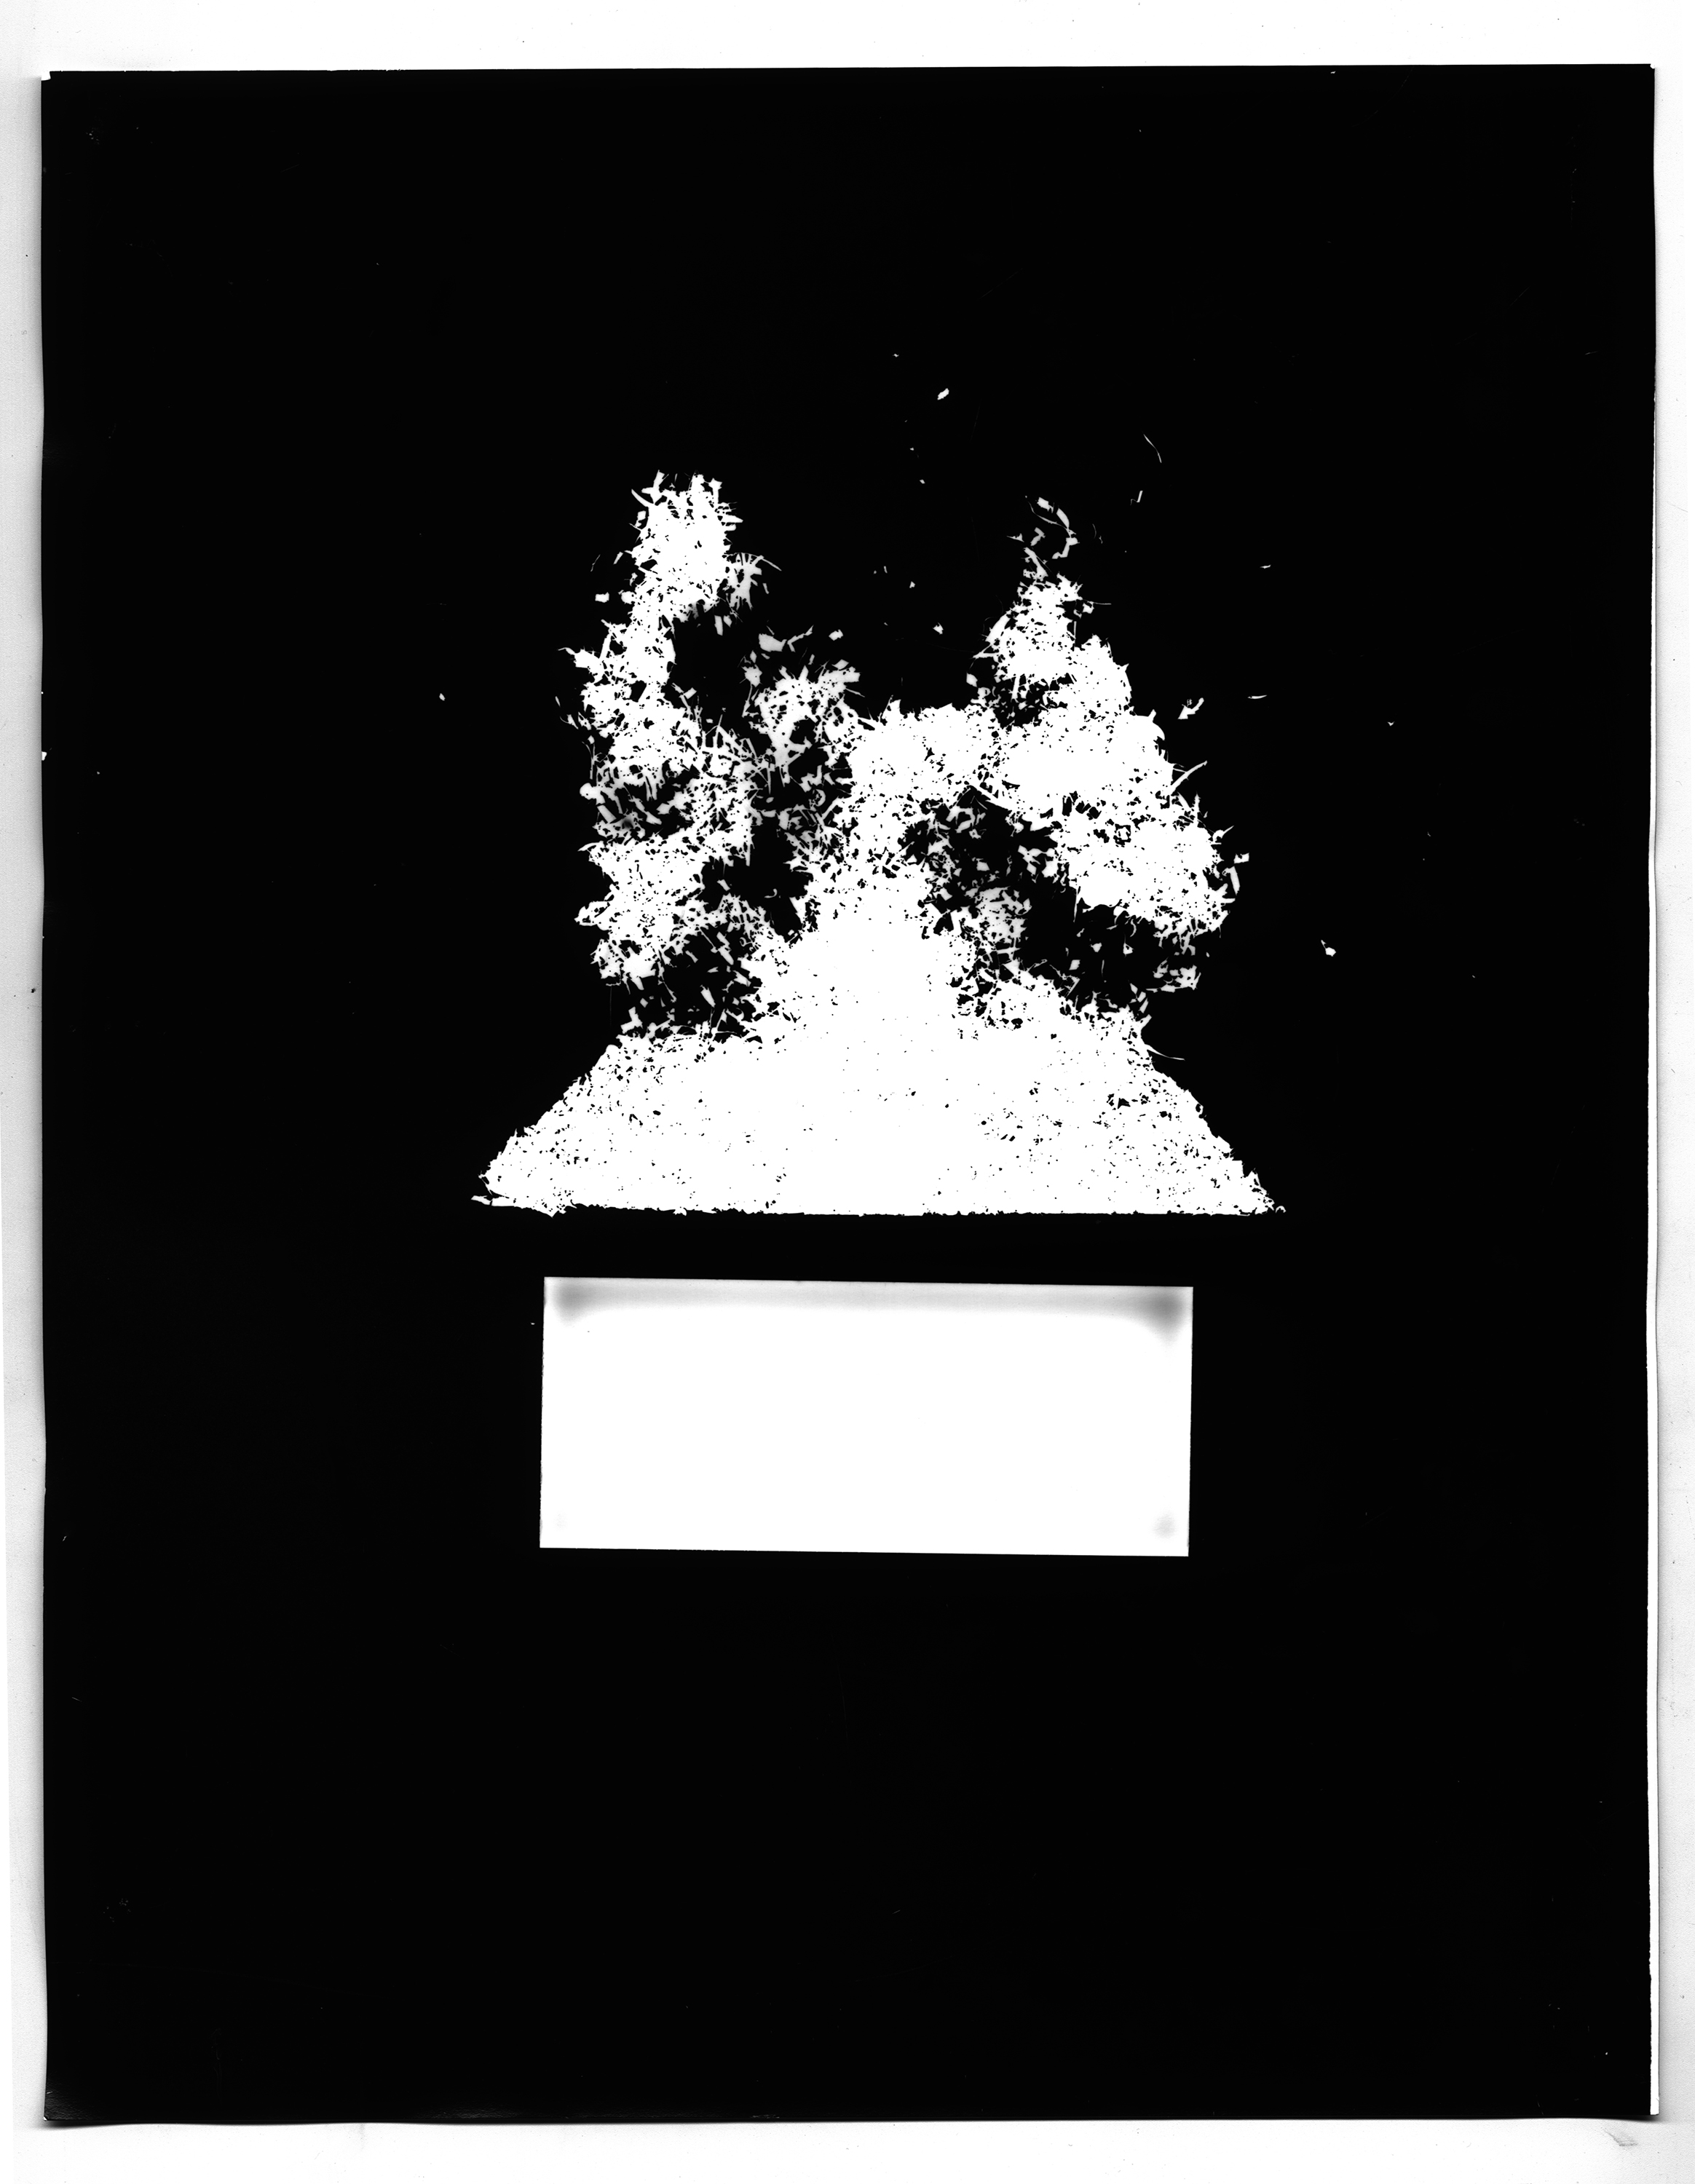 House on Fire - 11 x 14 Silver Gelatin Print